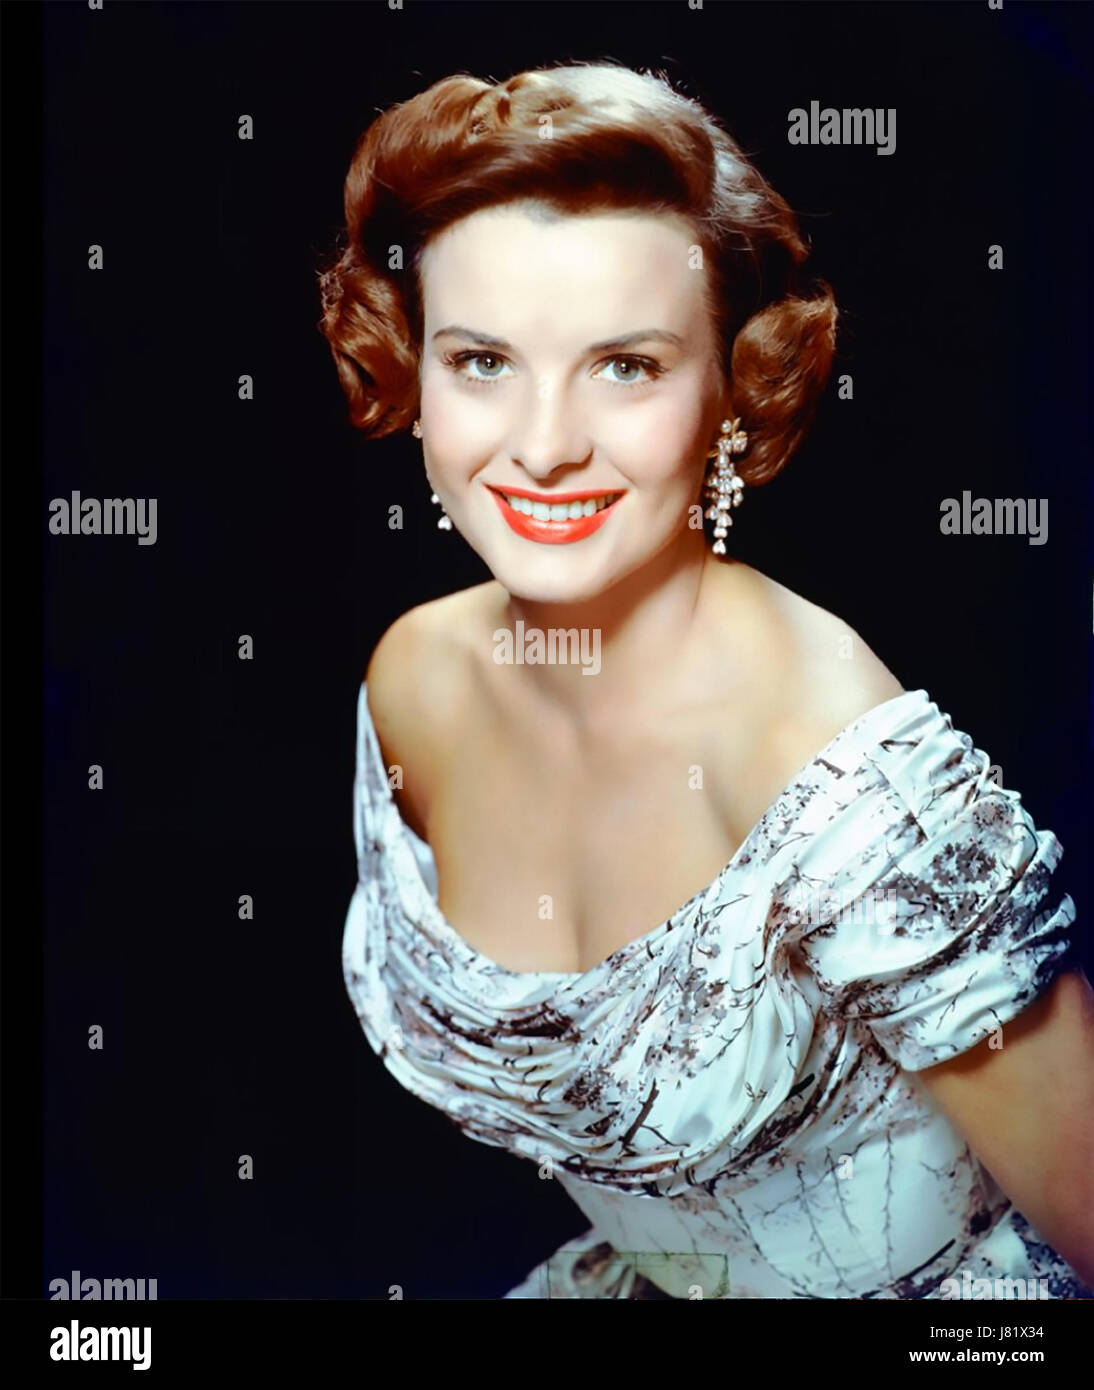 JEAN PETERS (1926-2000) US film actress about 1953 - Stock Image